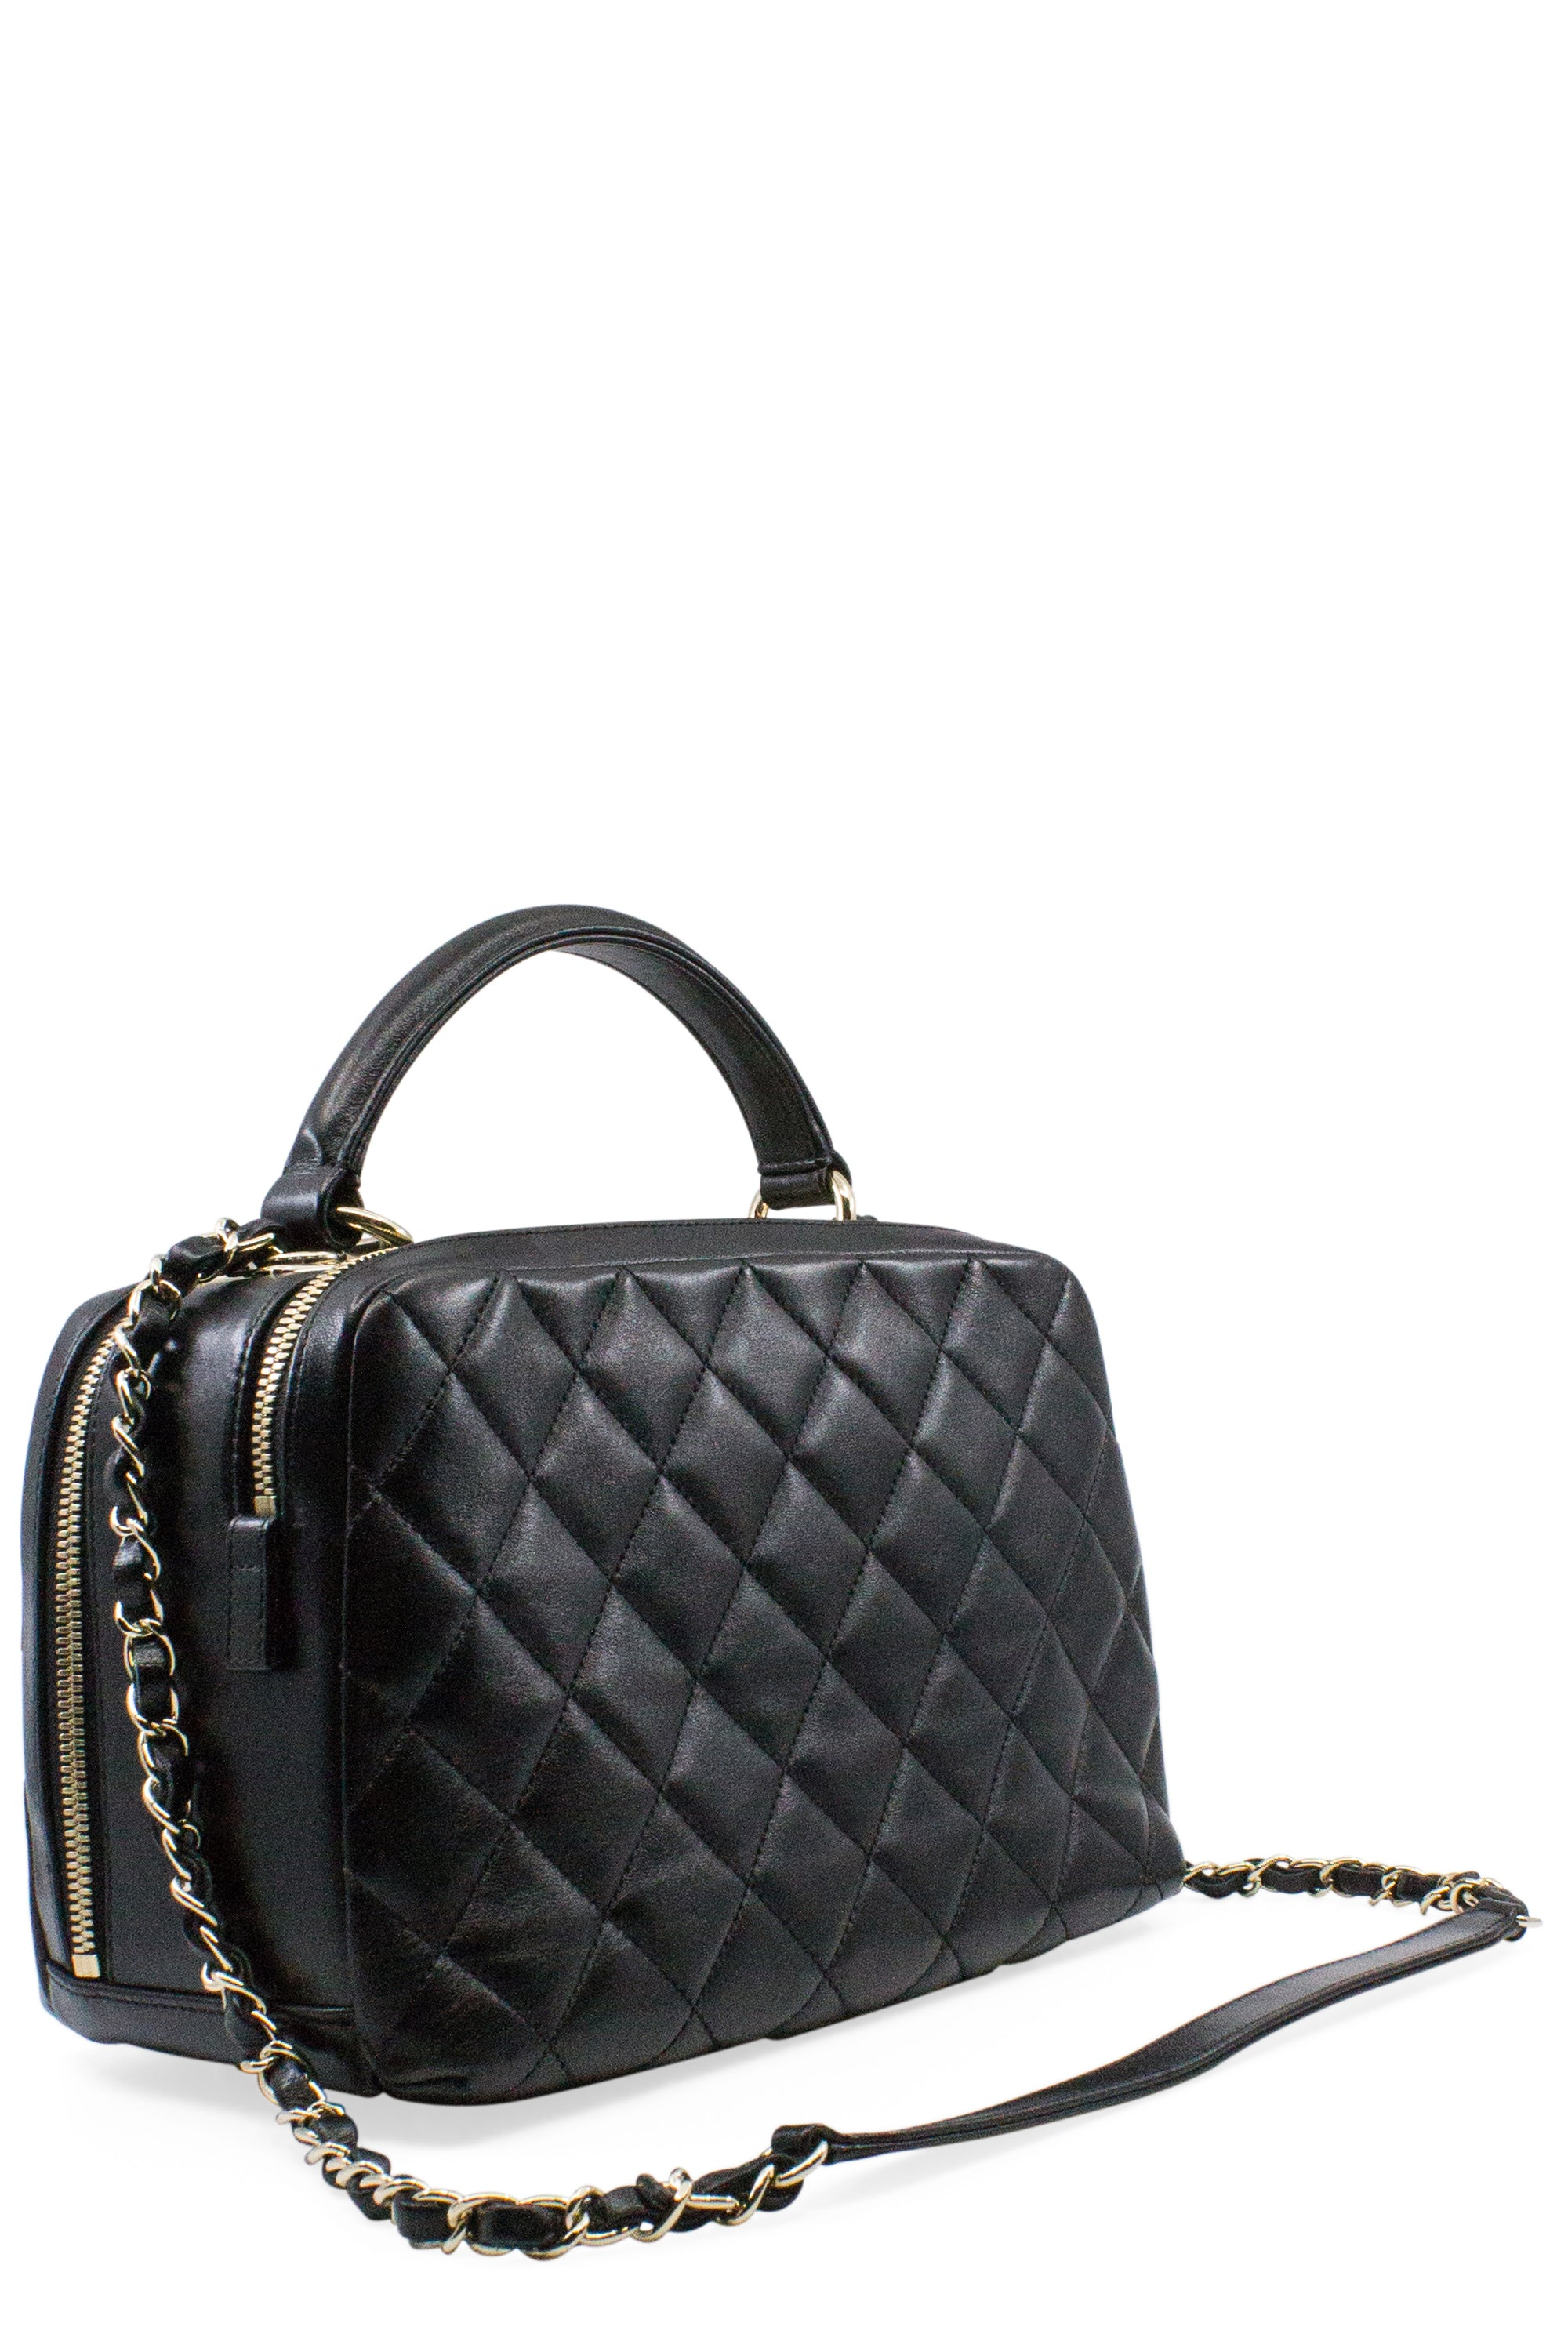 CHANEL Bowling Bag Black